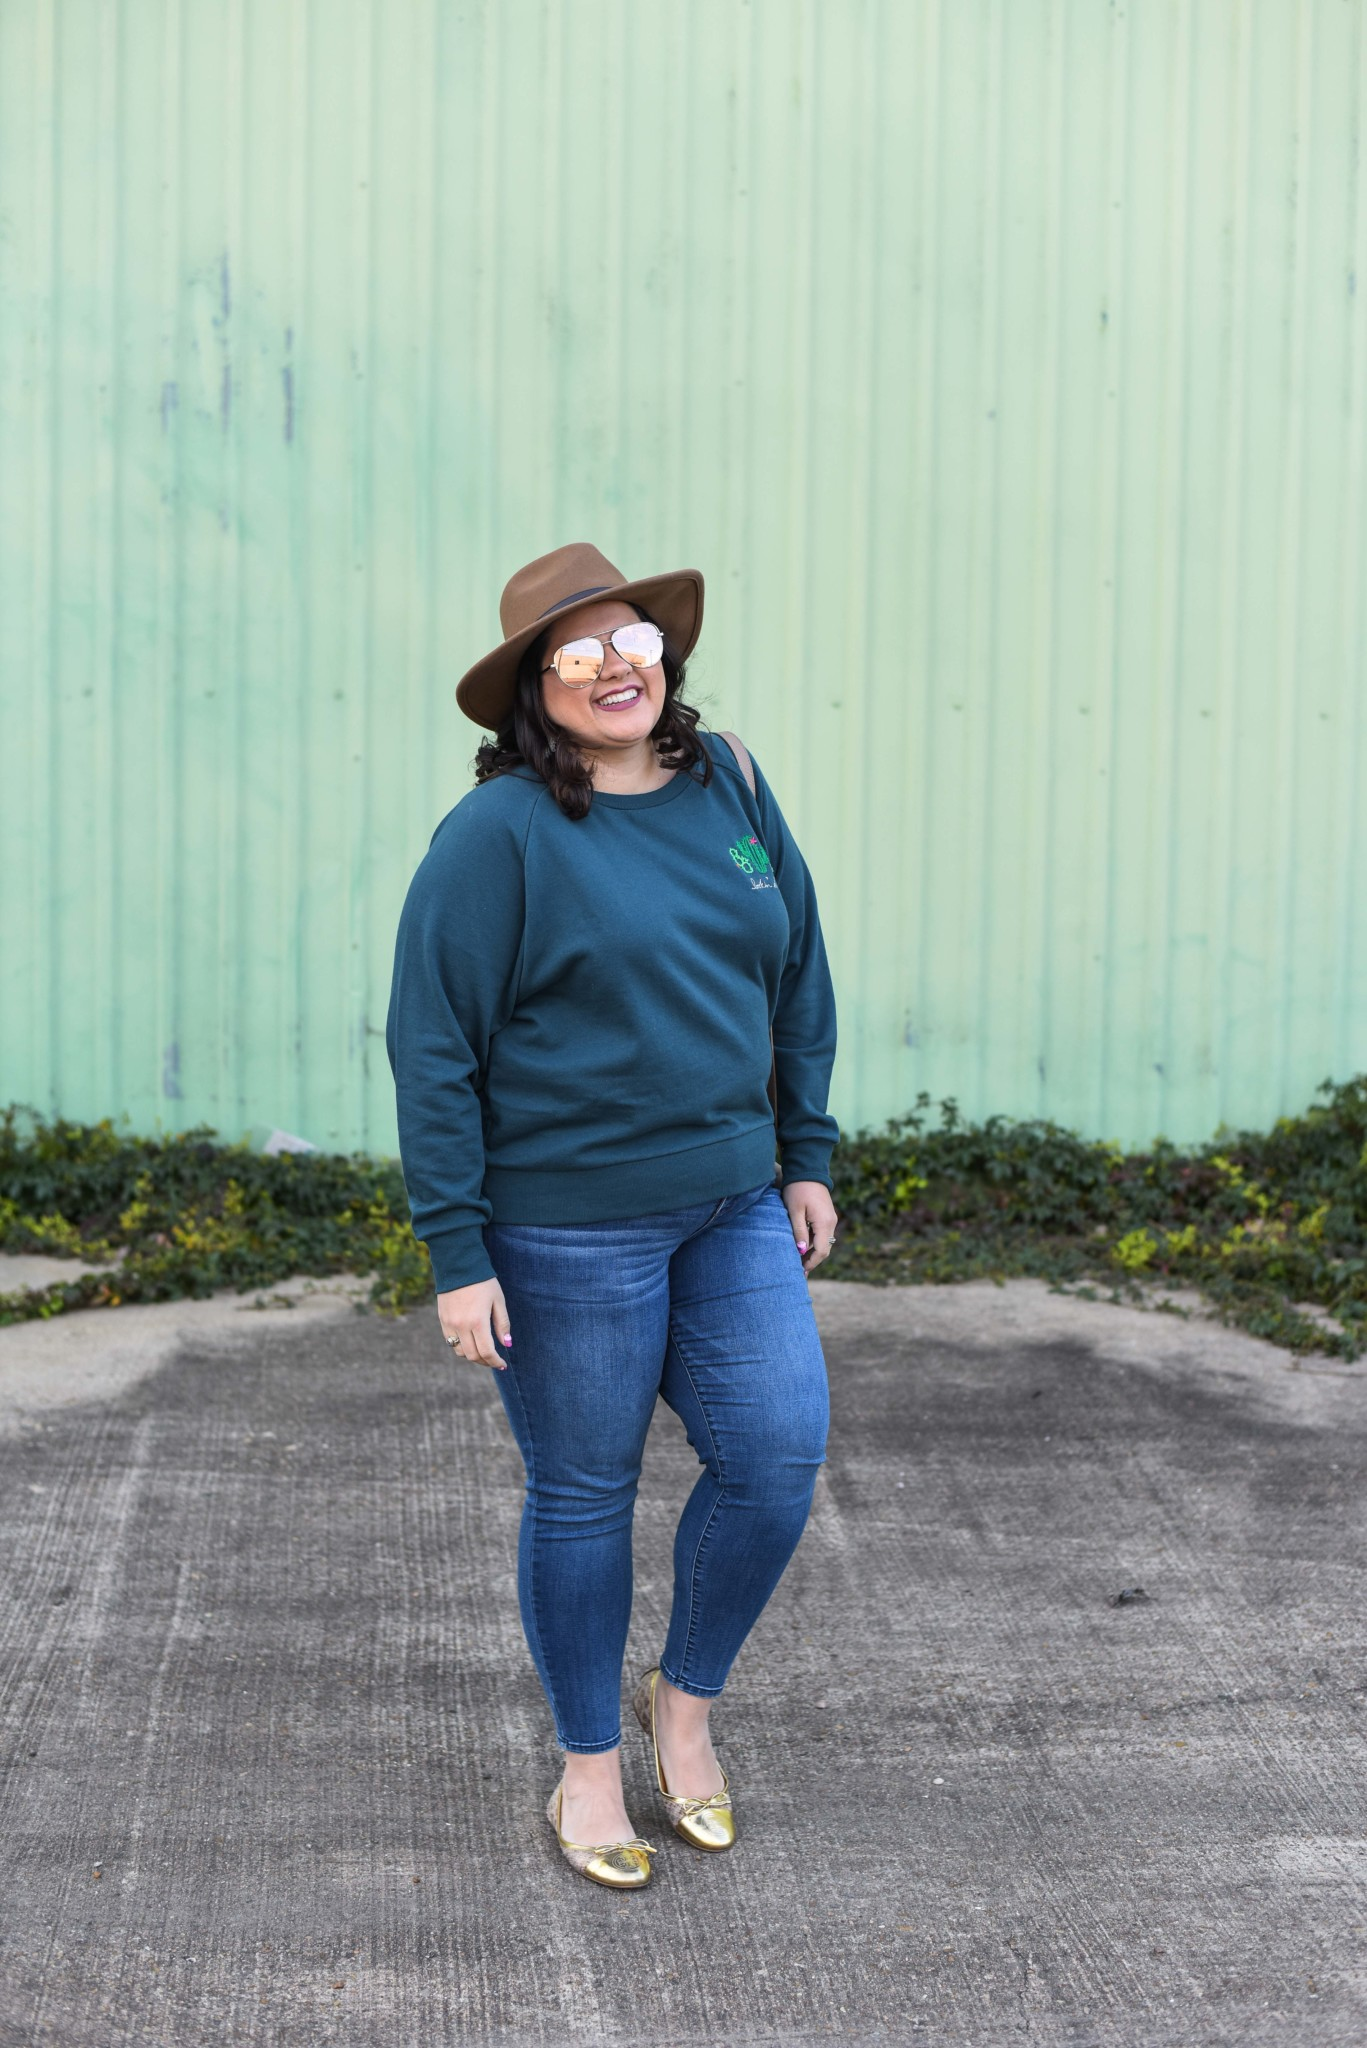 Running errands doesn't mean I have to dress boring. Today I'm styling a plus size embroidered sweatshirt two ways.